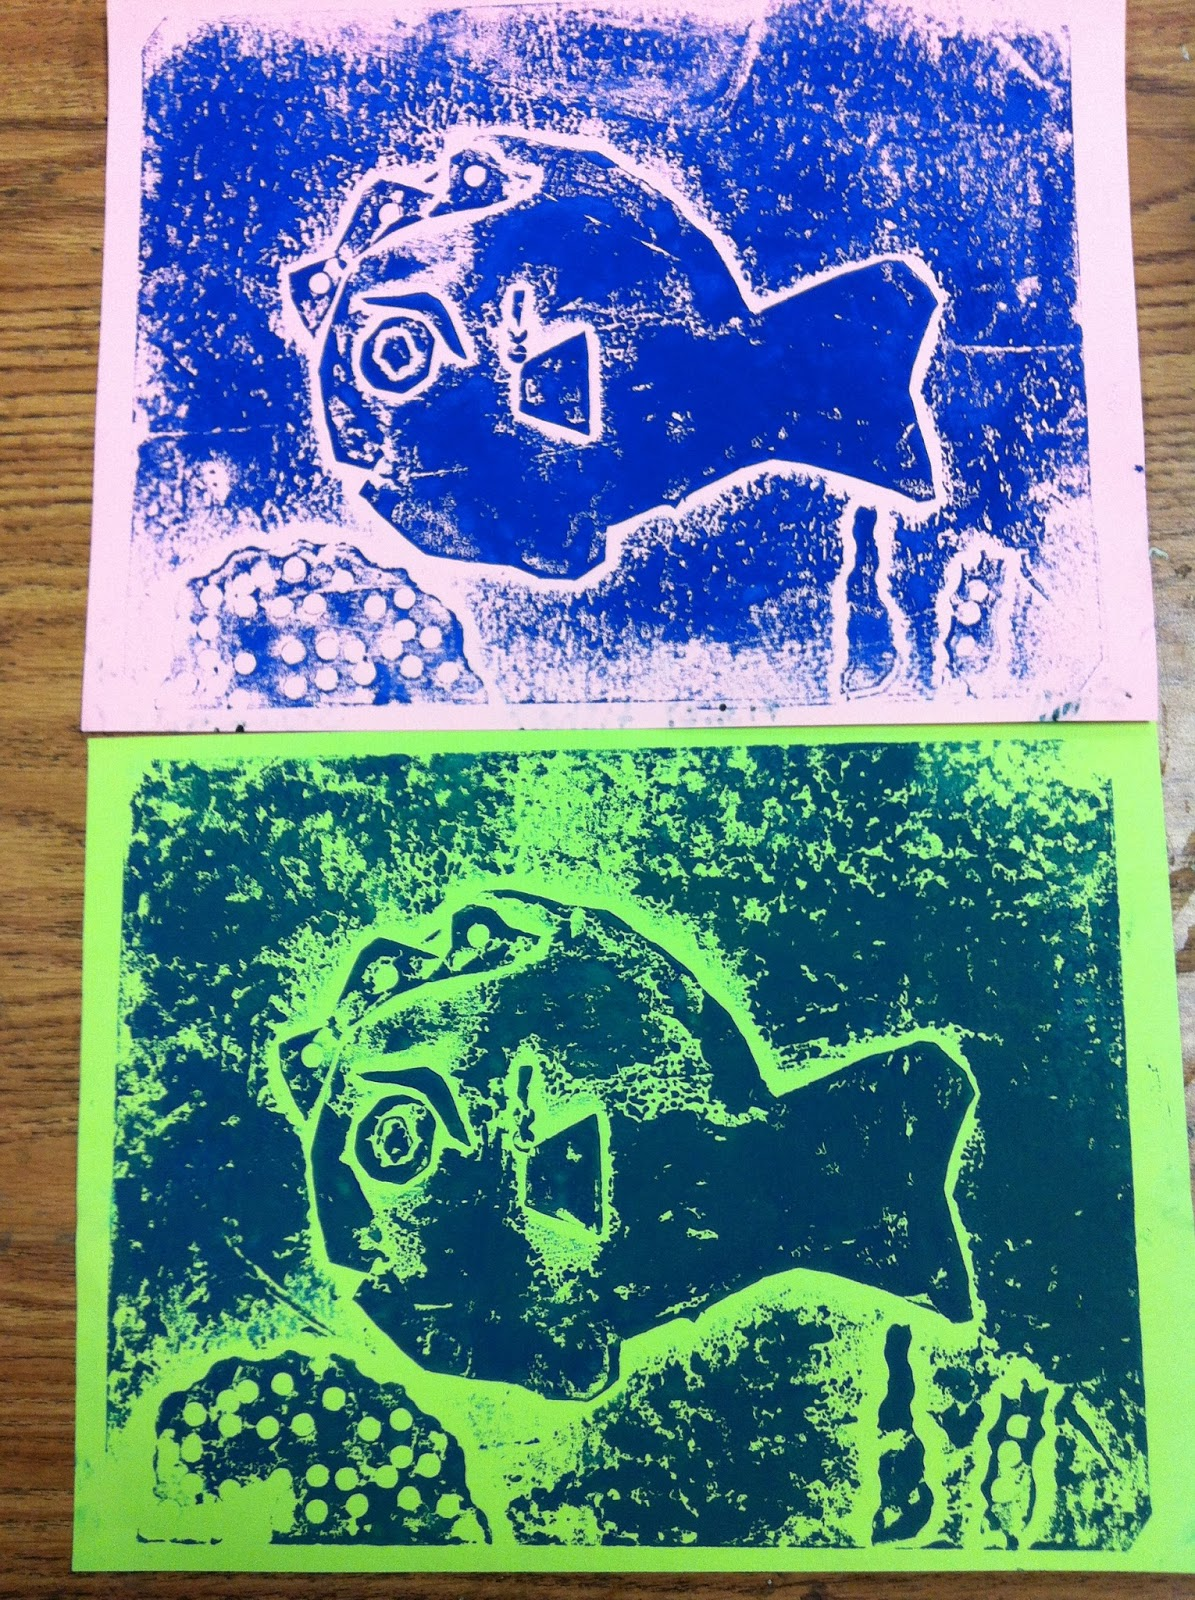 Chumleyscobey Art Room Collagraph Prints With 3rd Grade